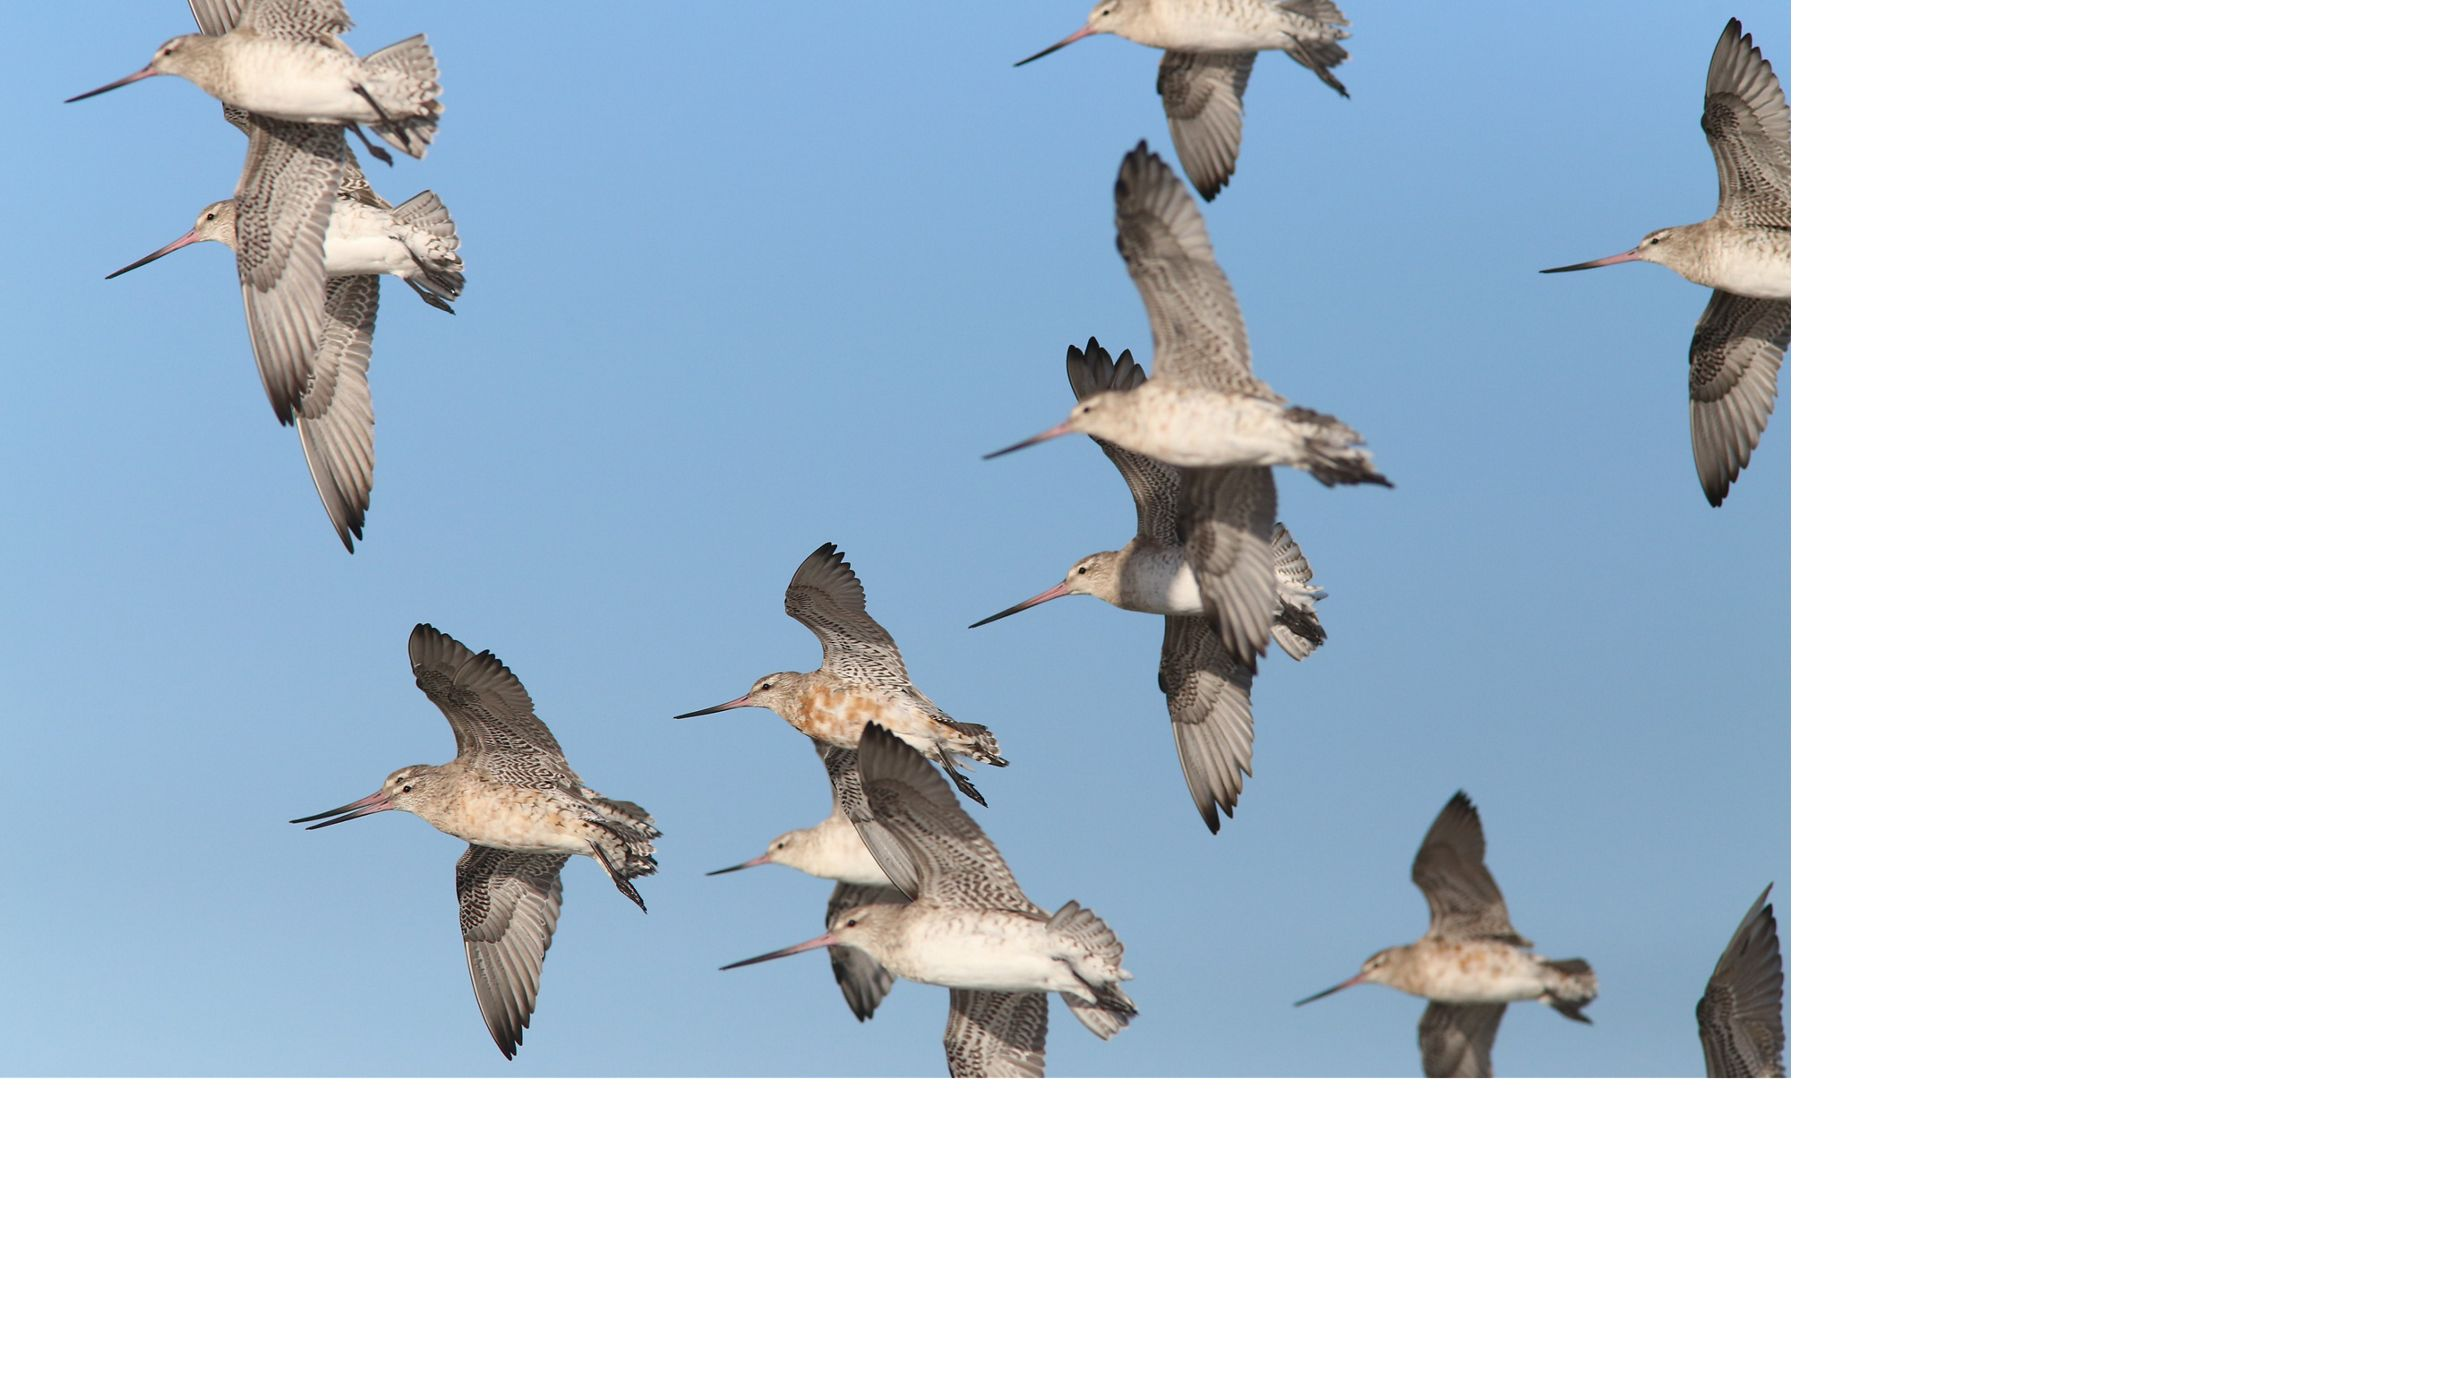 Bar-tailed Godwit birds in flight in a blue sky